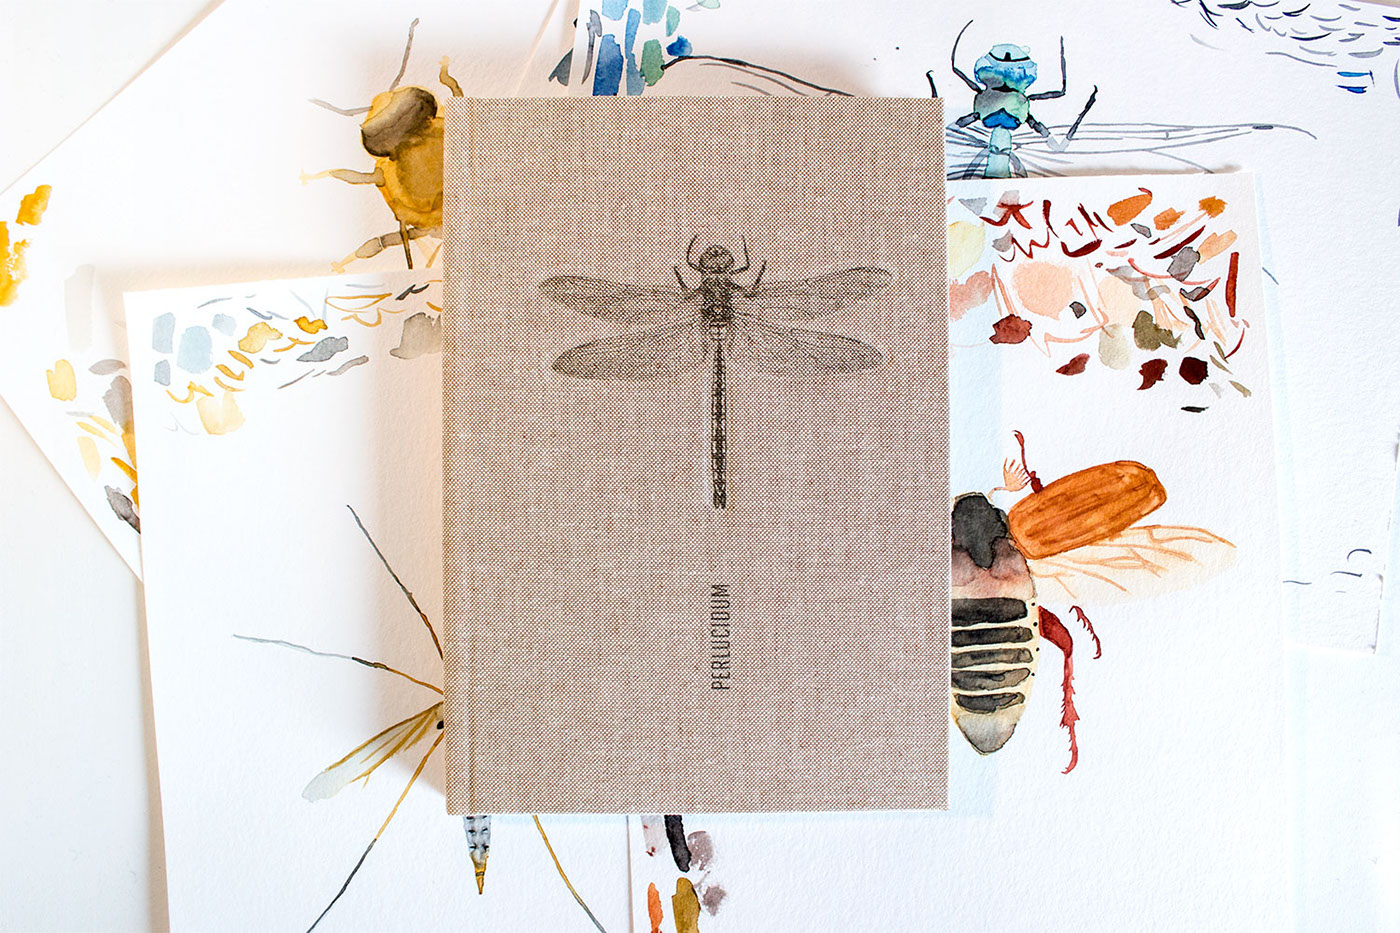 editorial book aquarell watercolor dotwork Insects animals detail insect wing wings transparent